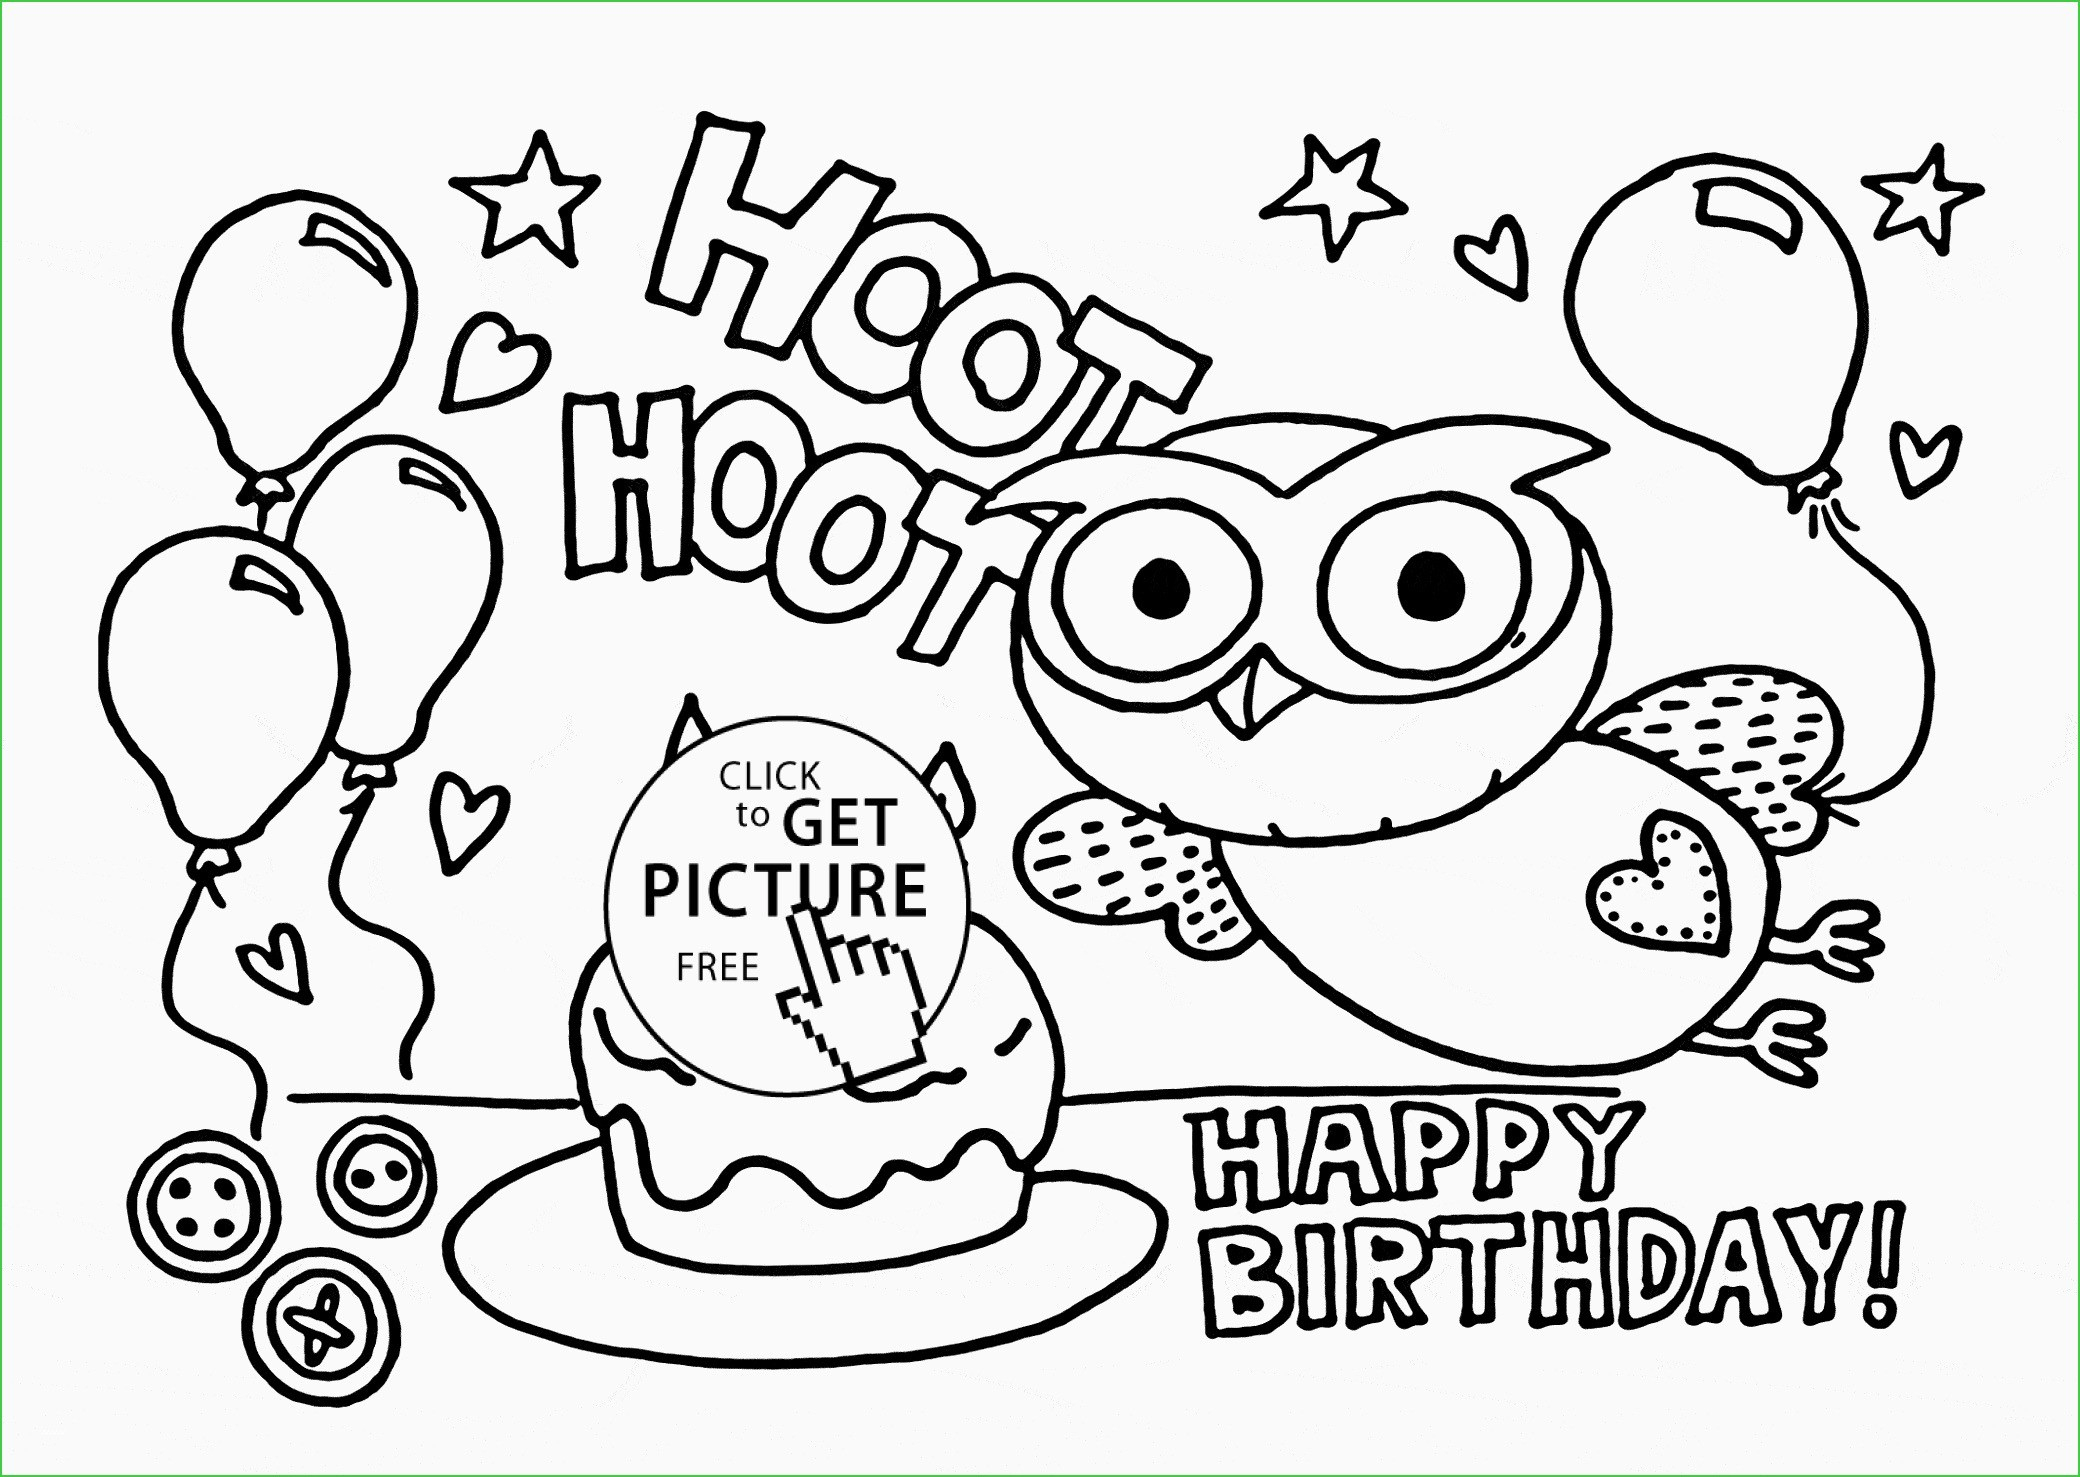 Free Printable 50Th Birthday Cards Funny   Popisgrzegorz - Free Printable 50Th Birthday Cards Funny